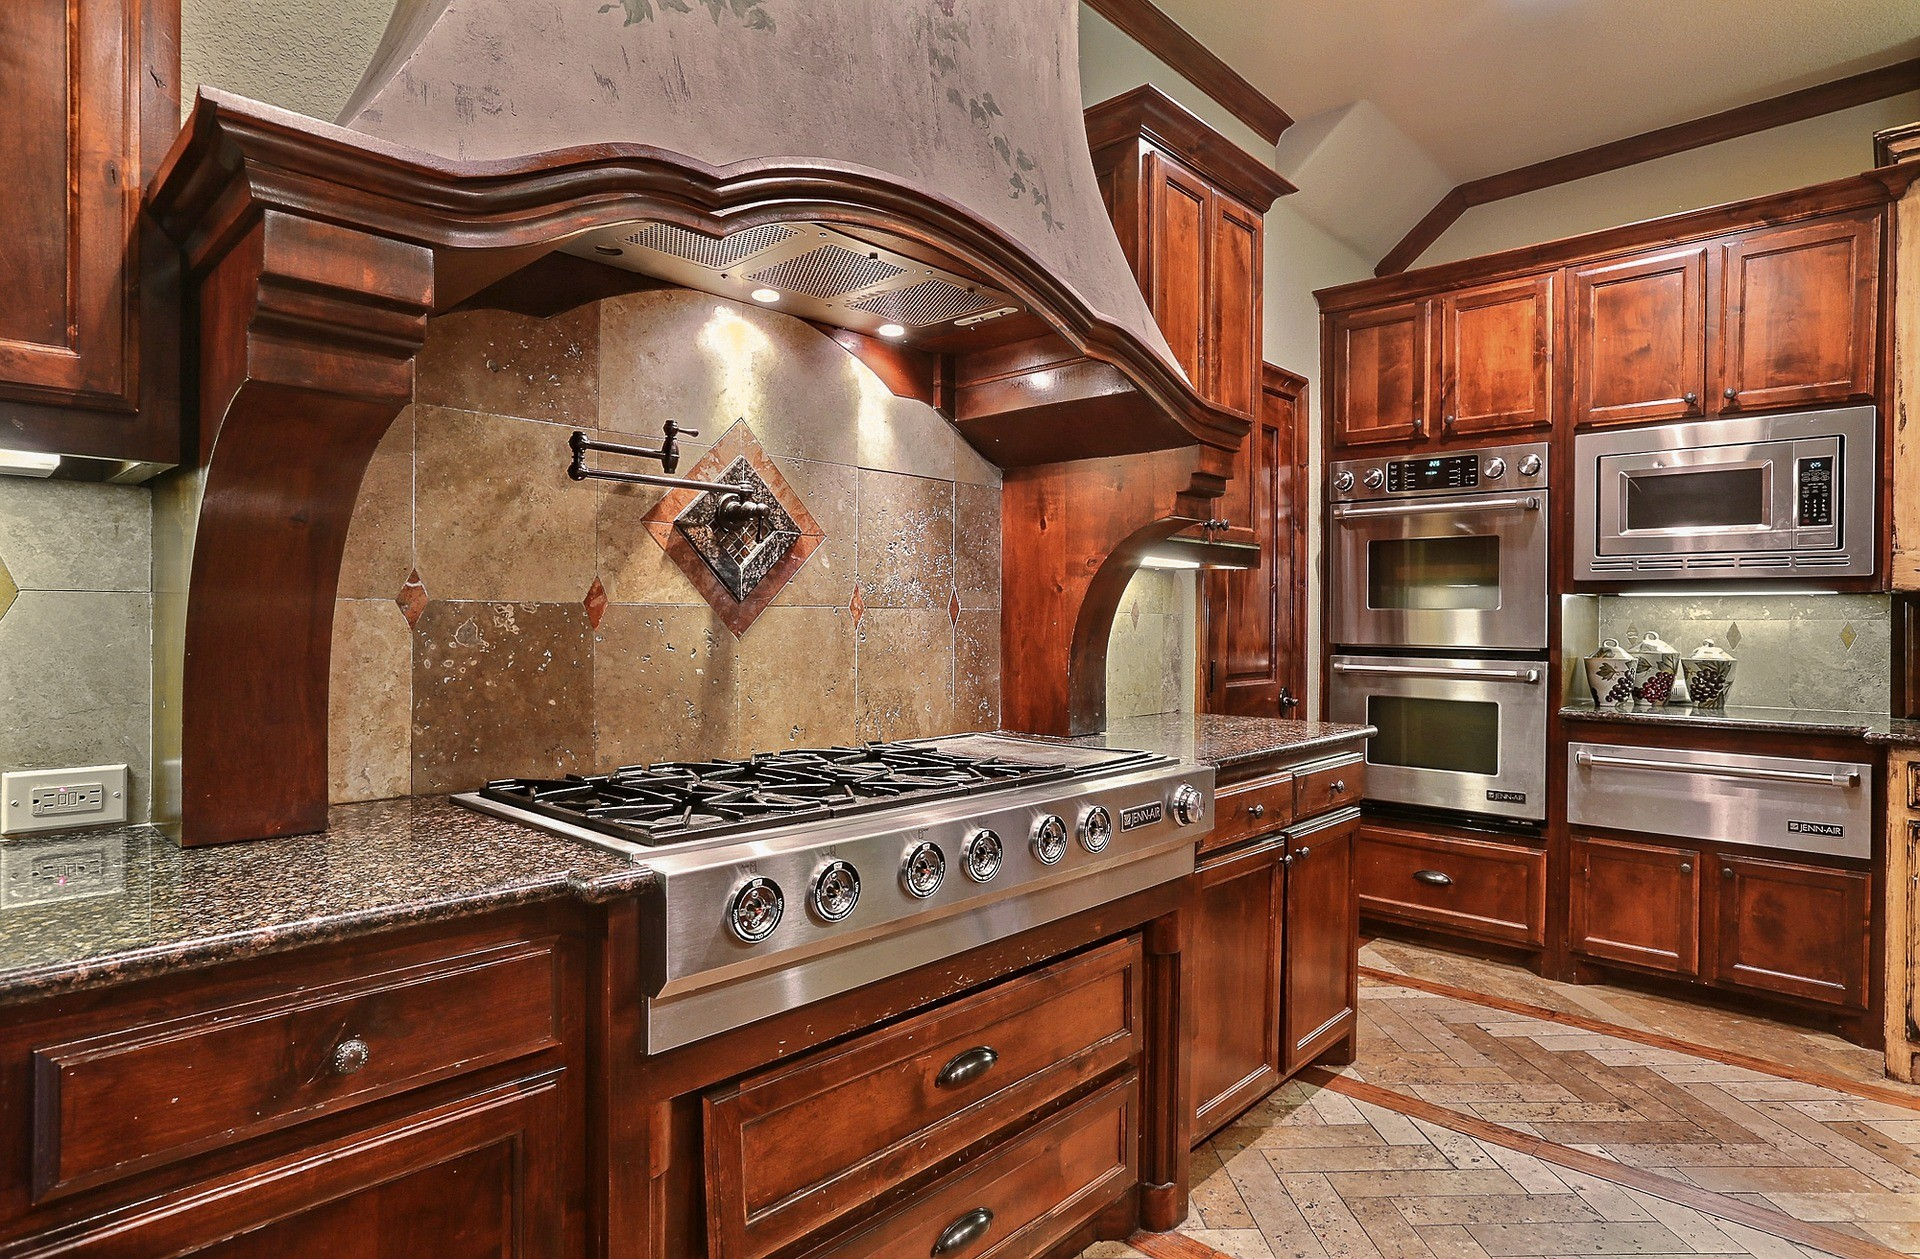 Broward Kitchen & Bath Remodeling Pros - best in Broward County Florida, countertops, bathrooms, renovations, custom cabinets, flooring-70-We do kitchen & bath remodeling, home renovations, custom lighting, custom cabinet installation, cabinet refacing and refinishing, outdoor kitchens, commercial kitchen, countertops and more